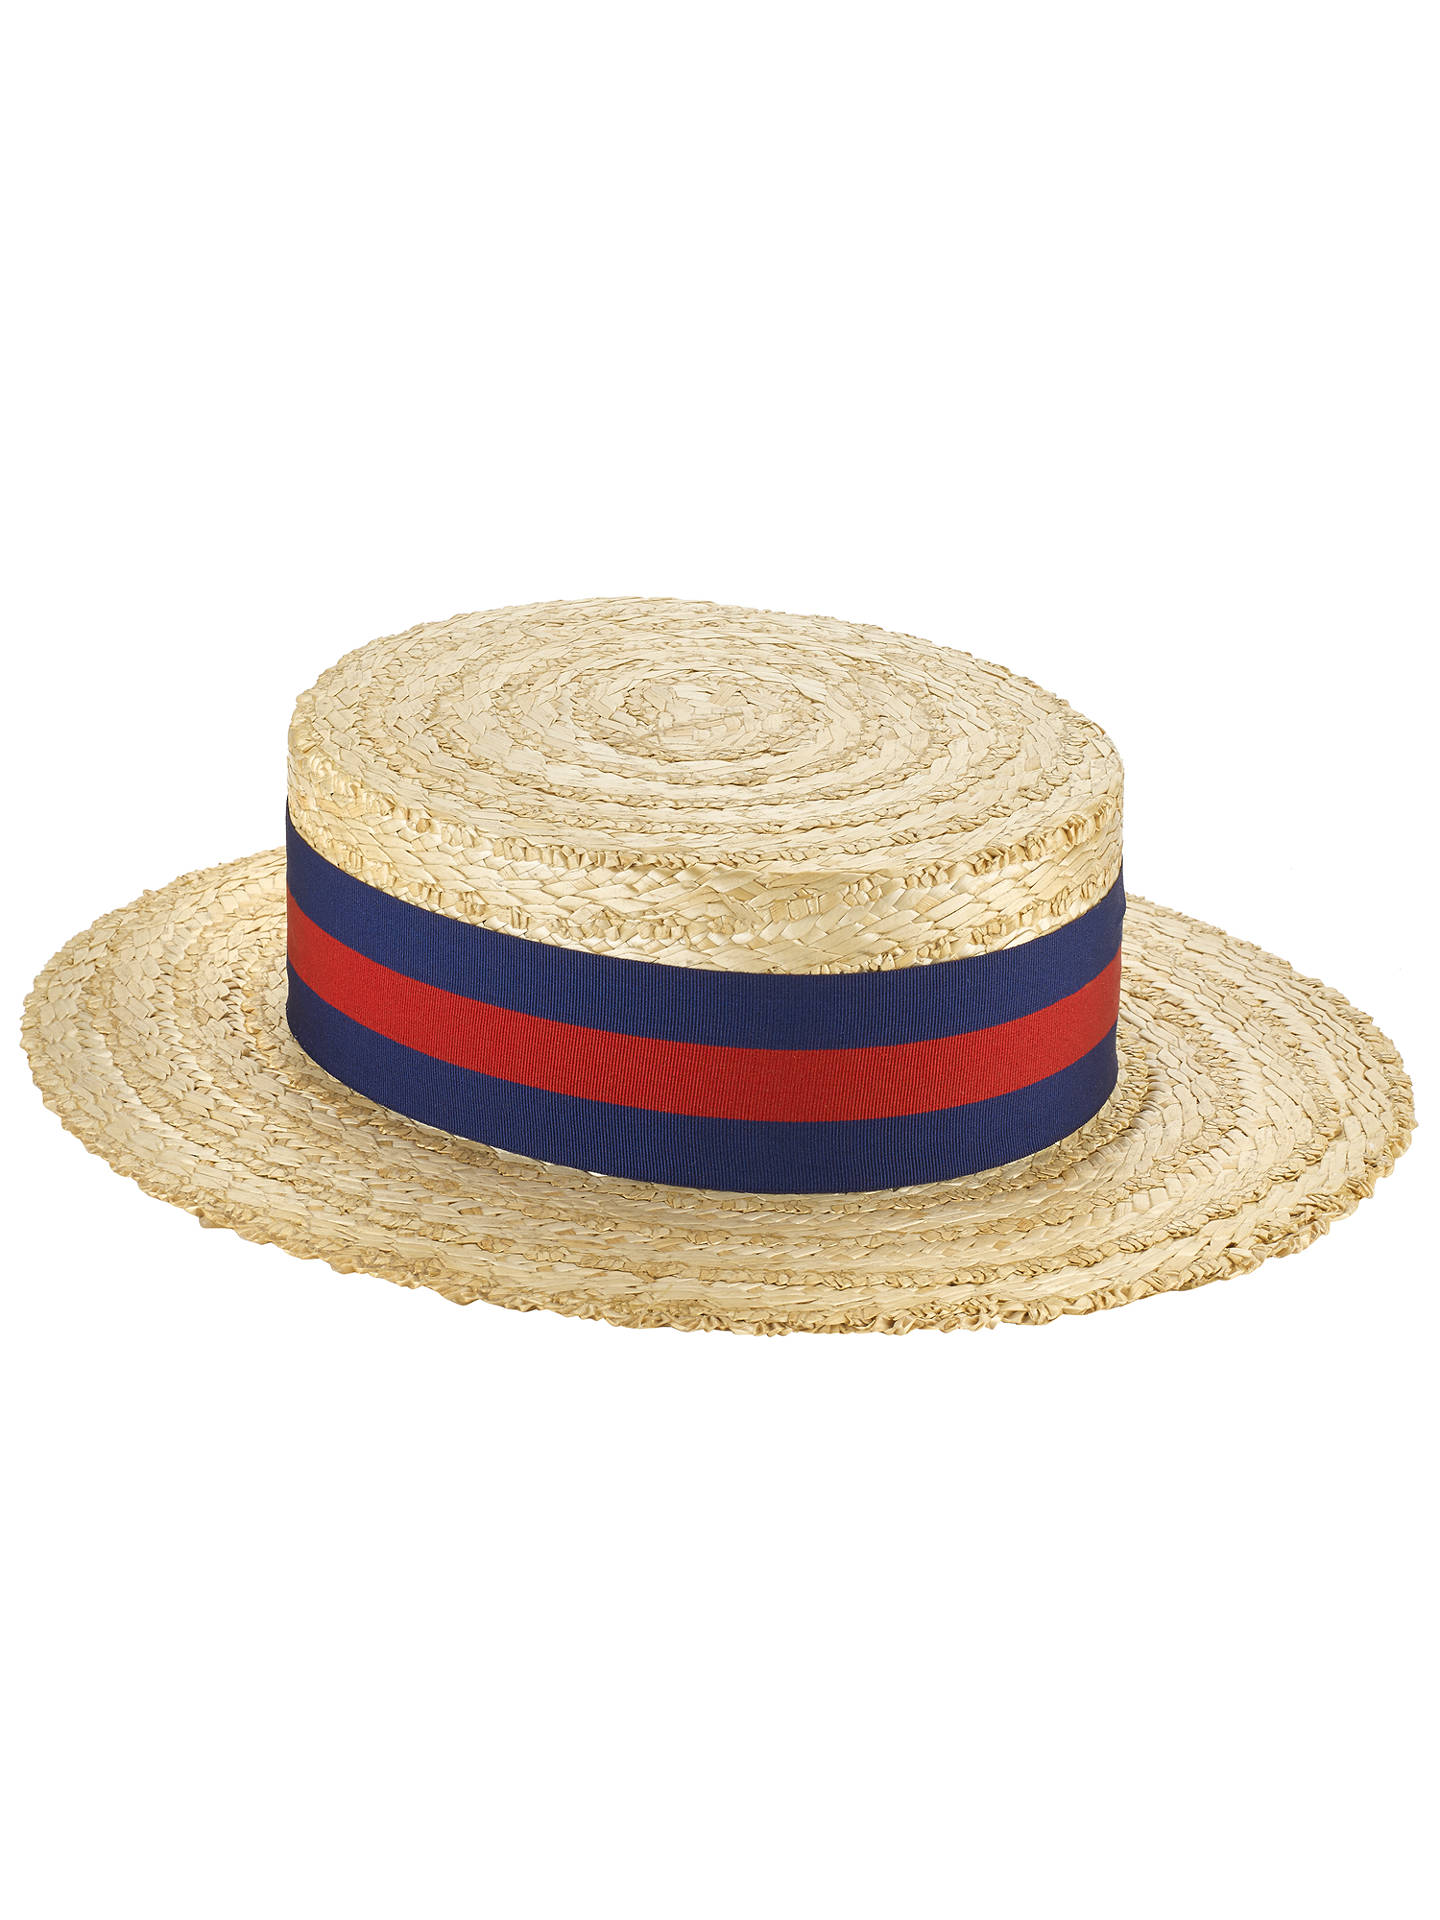 81896564 Buy Olney Boater Hat, Natural, M Online at johnlewis.com ...